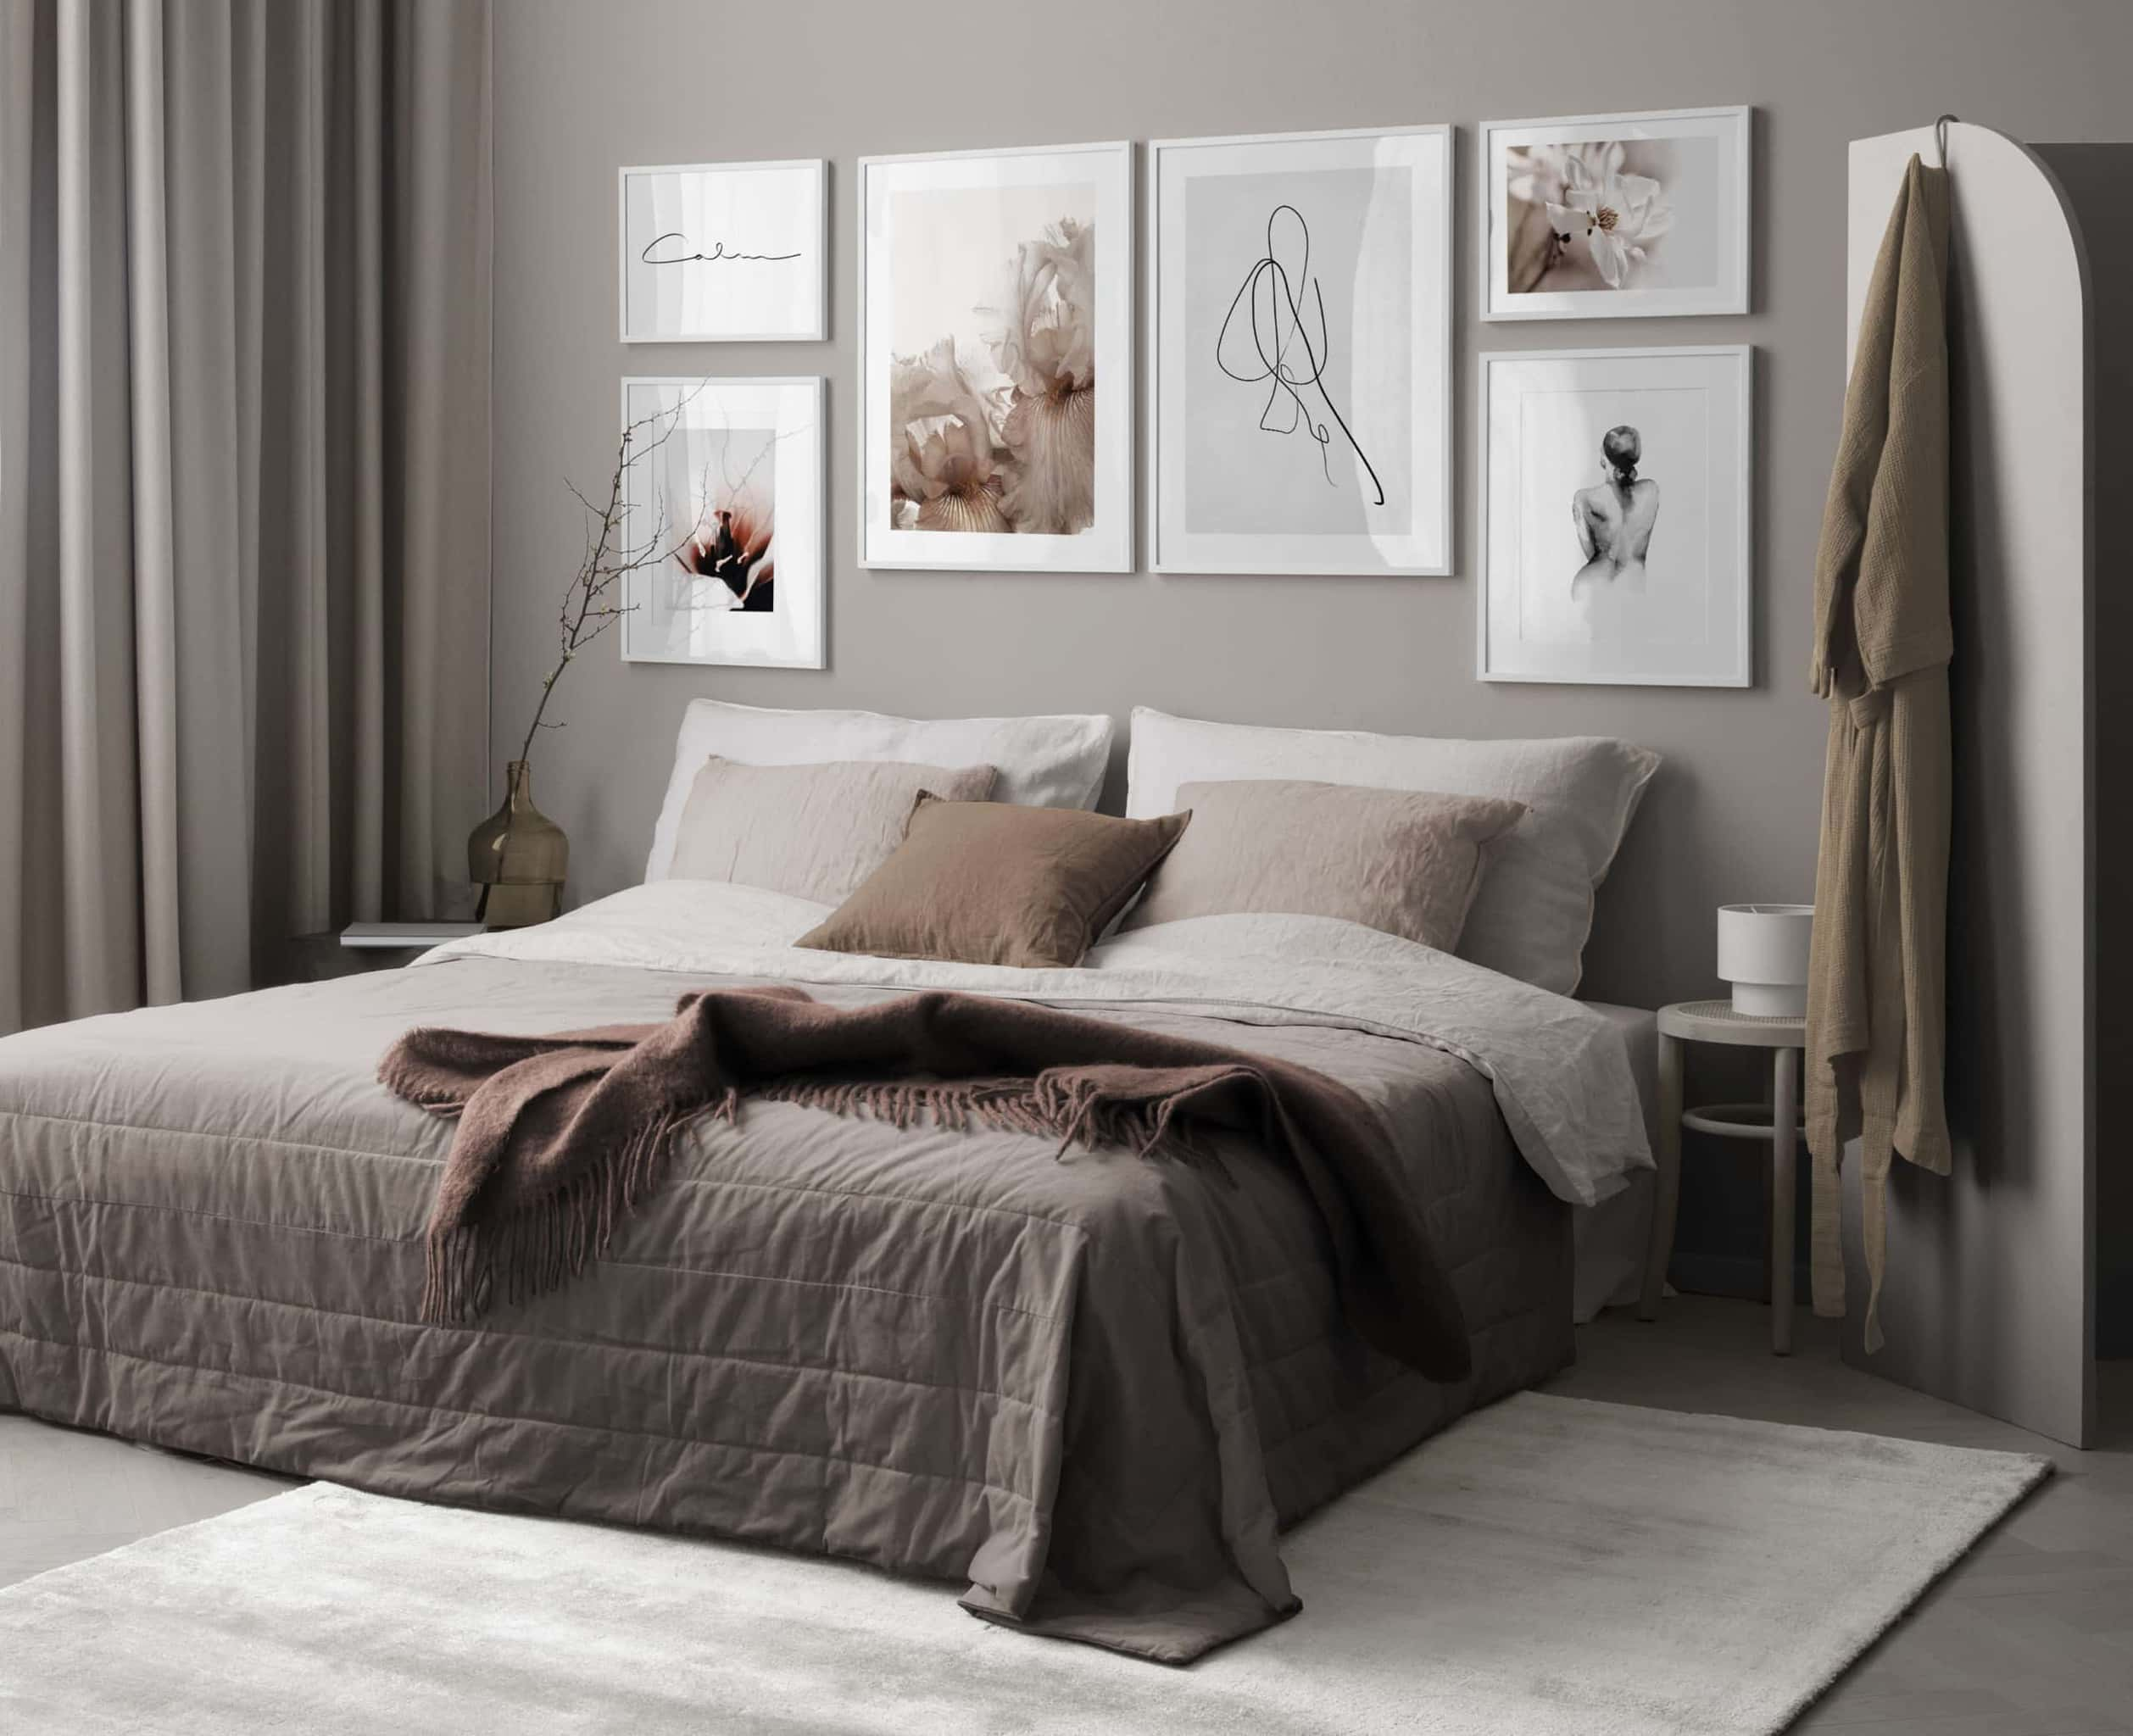 gallery wall of frames above bed in moody brown bedroom desenio